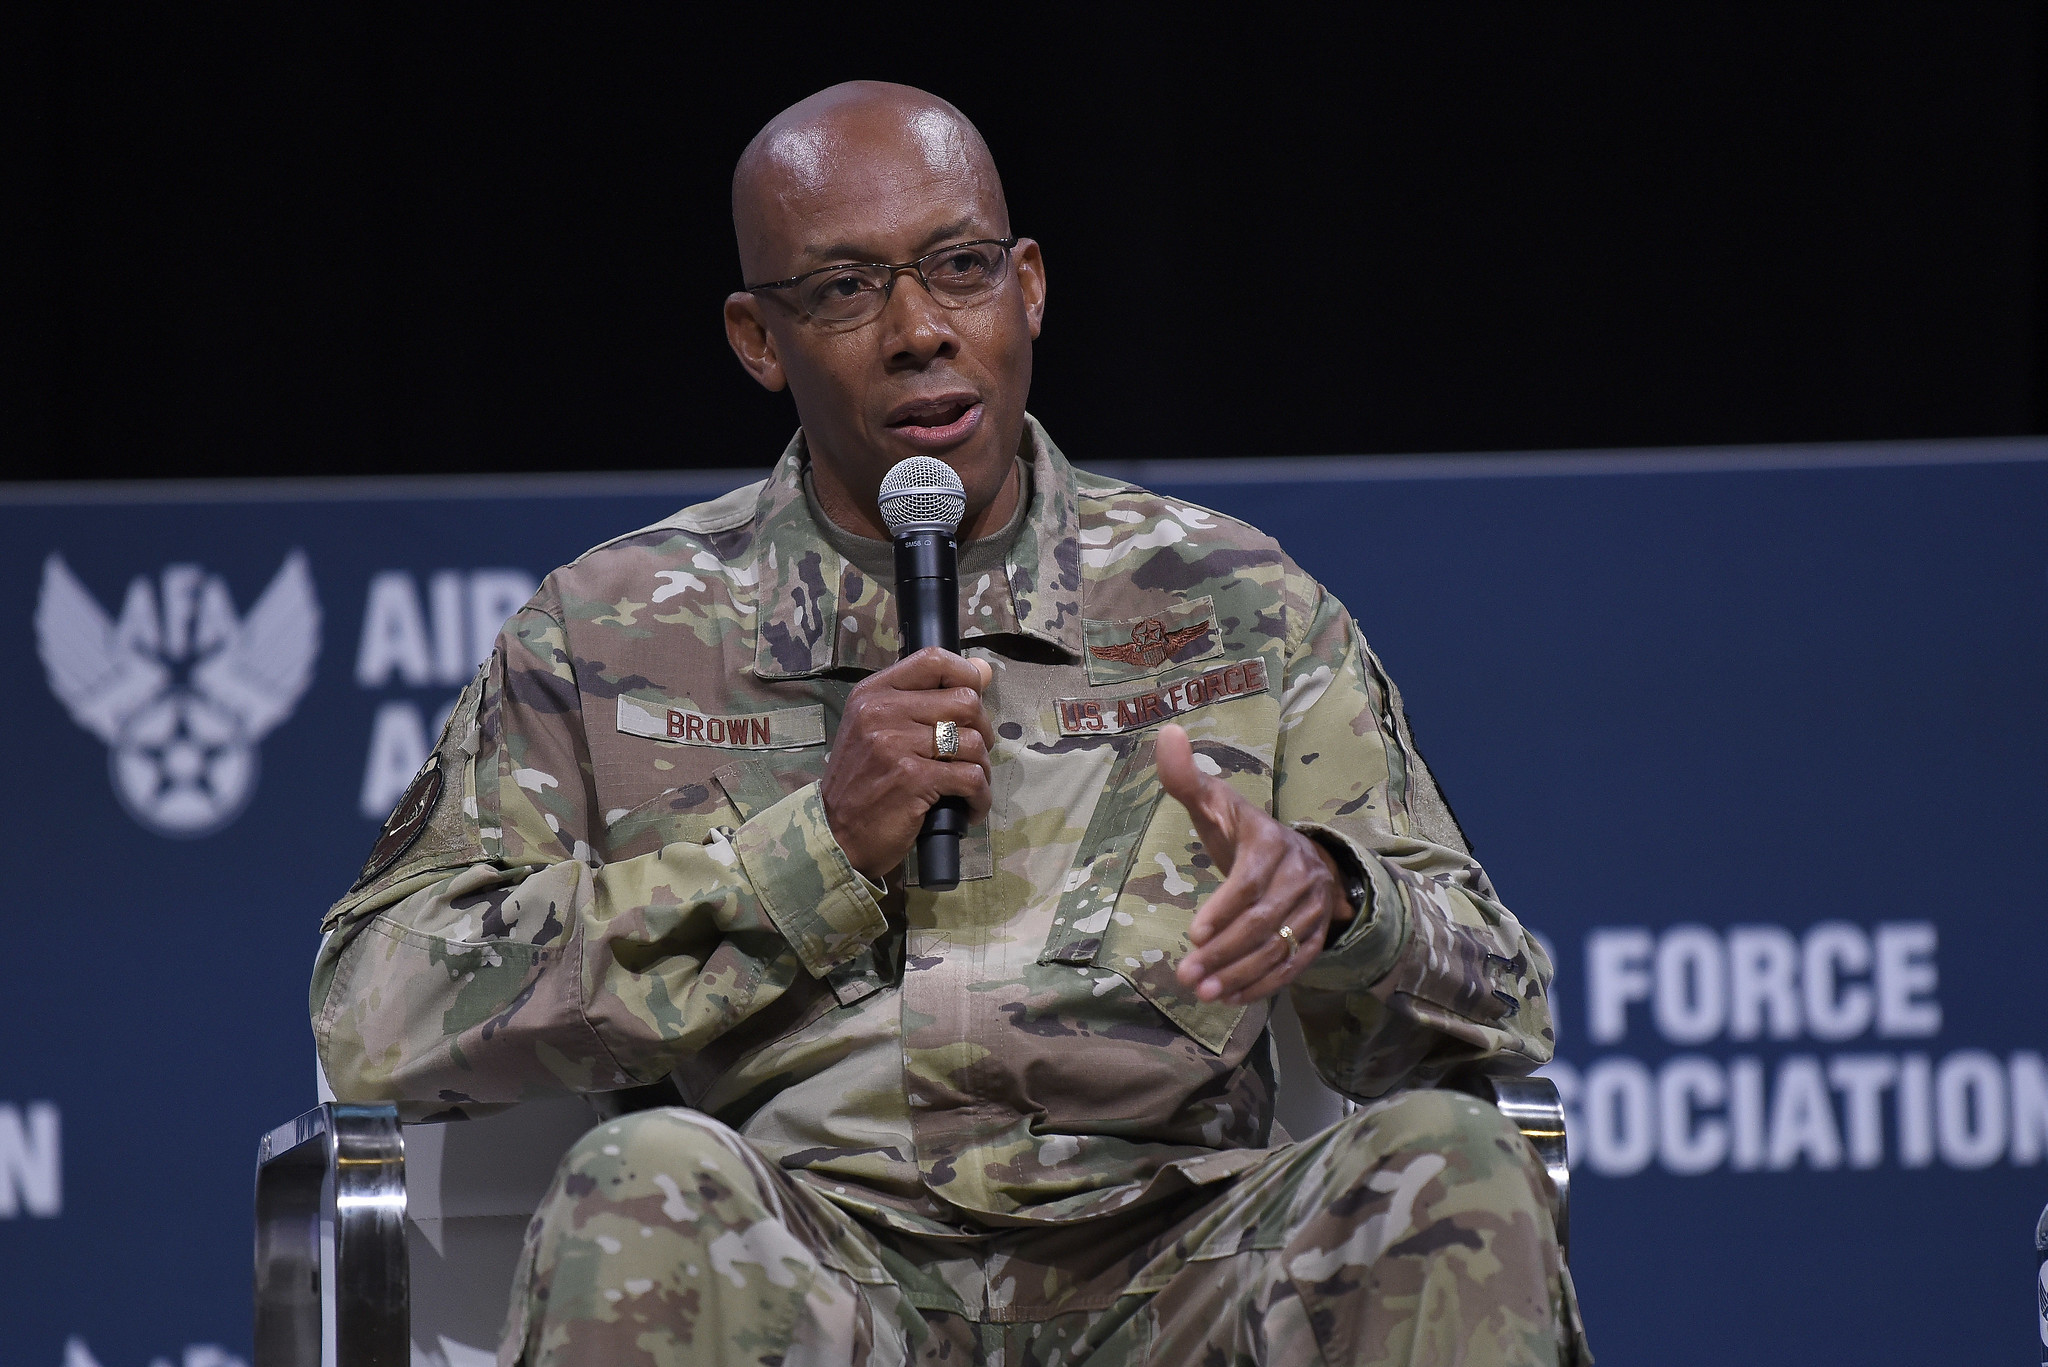 Gen. Charles Brown confirmed as first Black military service chief in American history